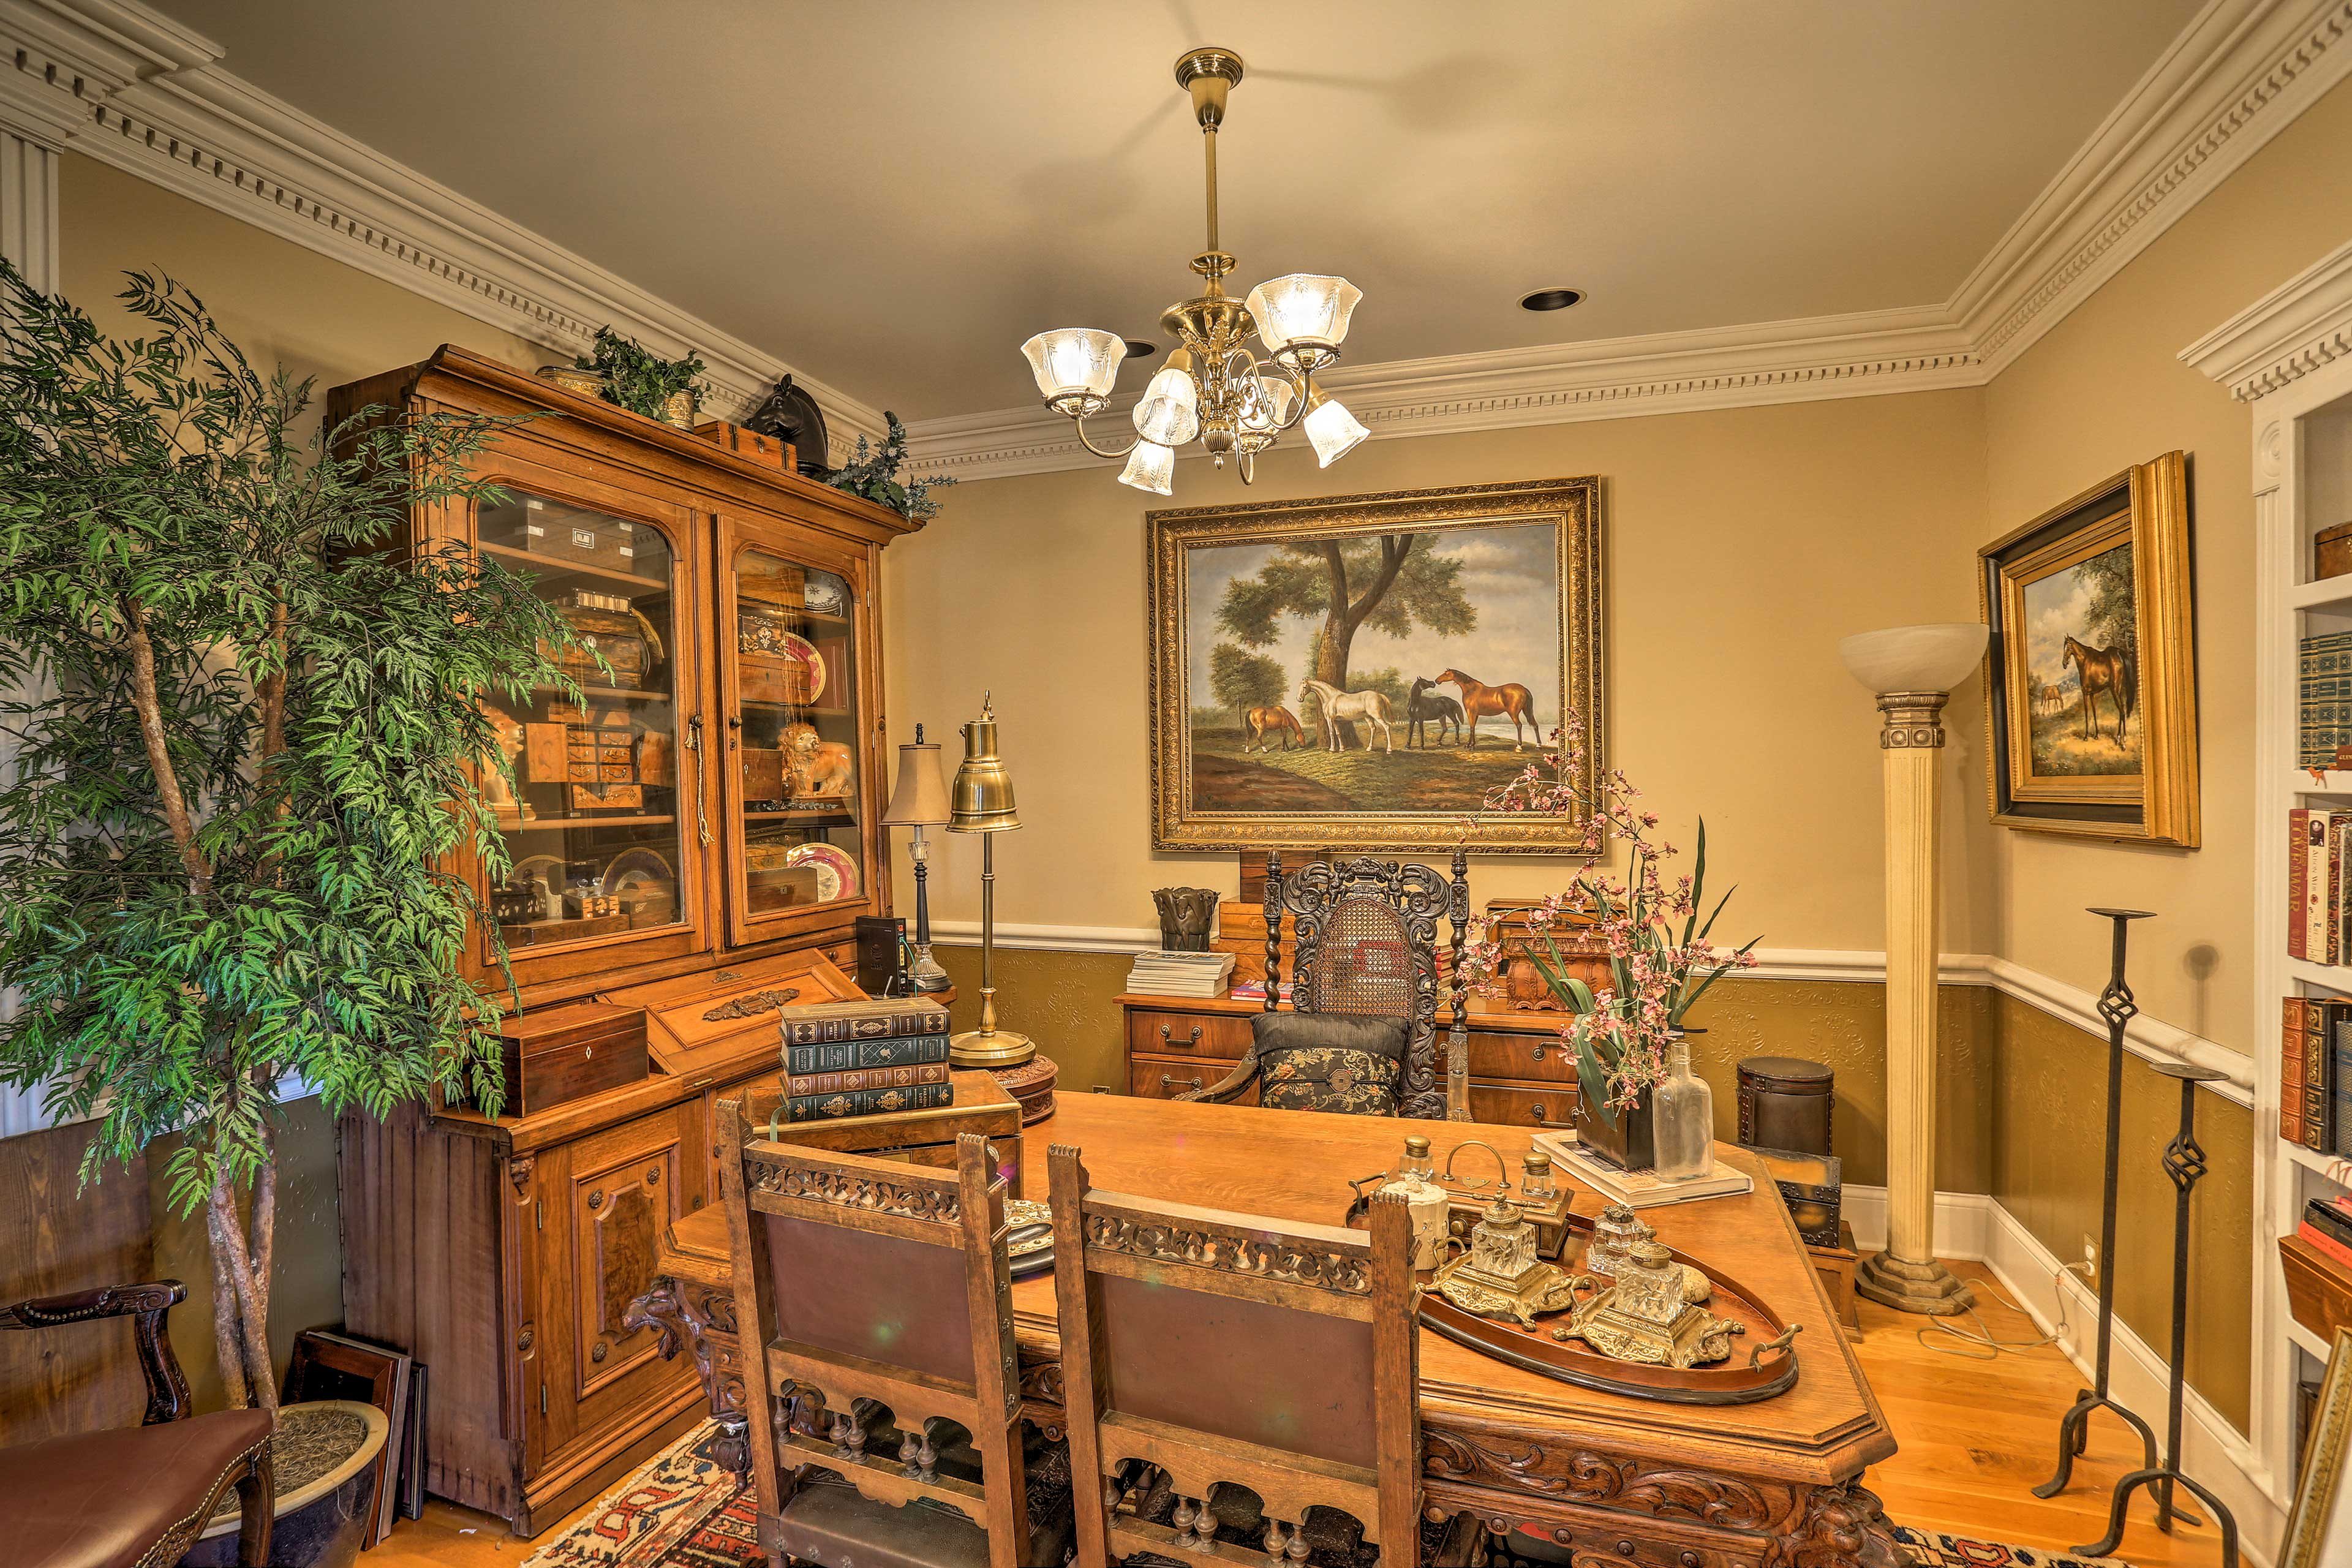 The home has tons of dining areas for you to enjoy your meals.